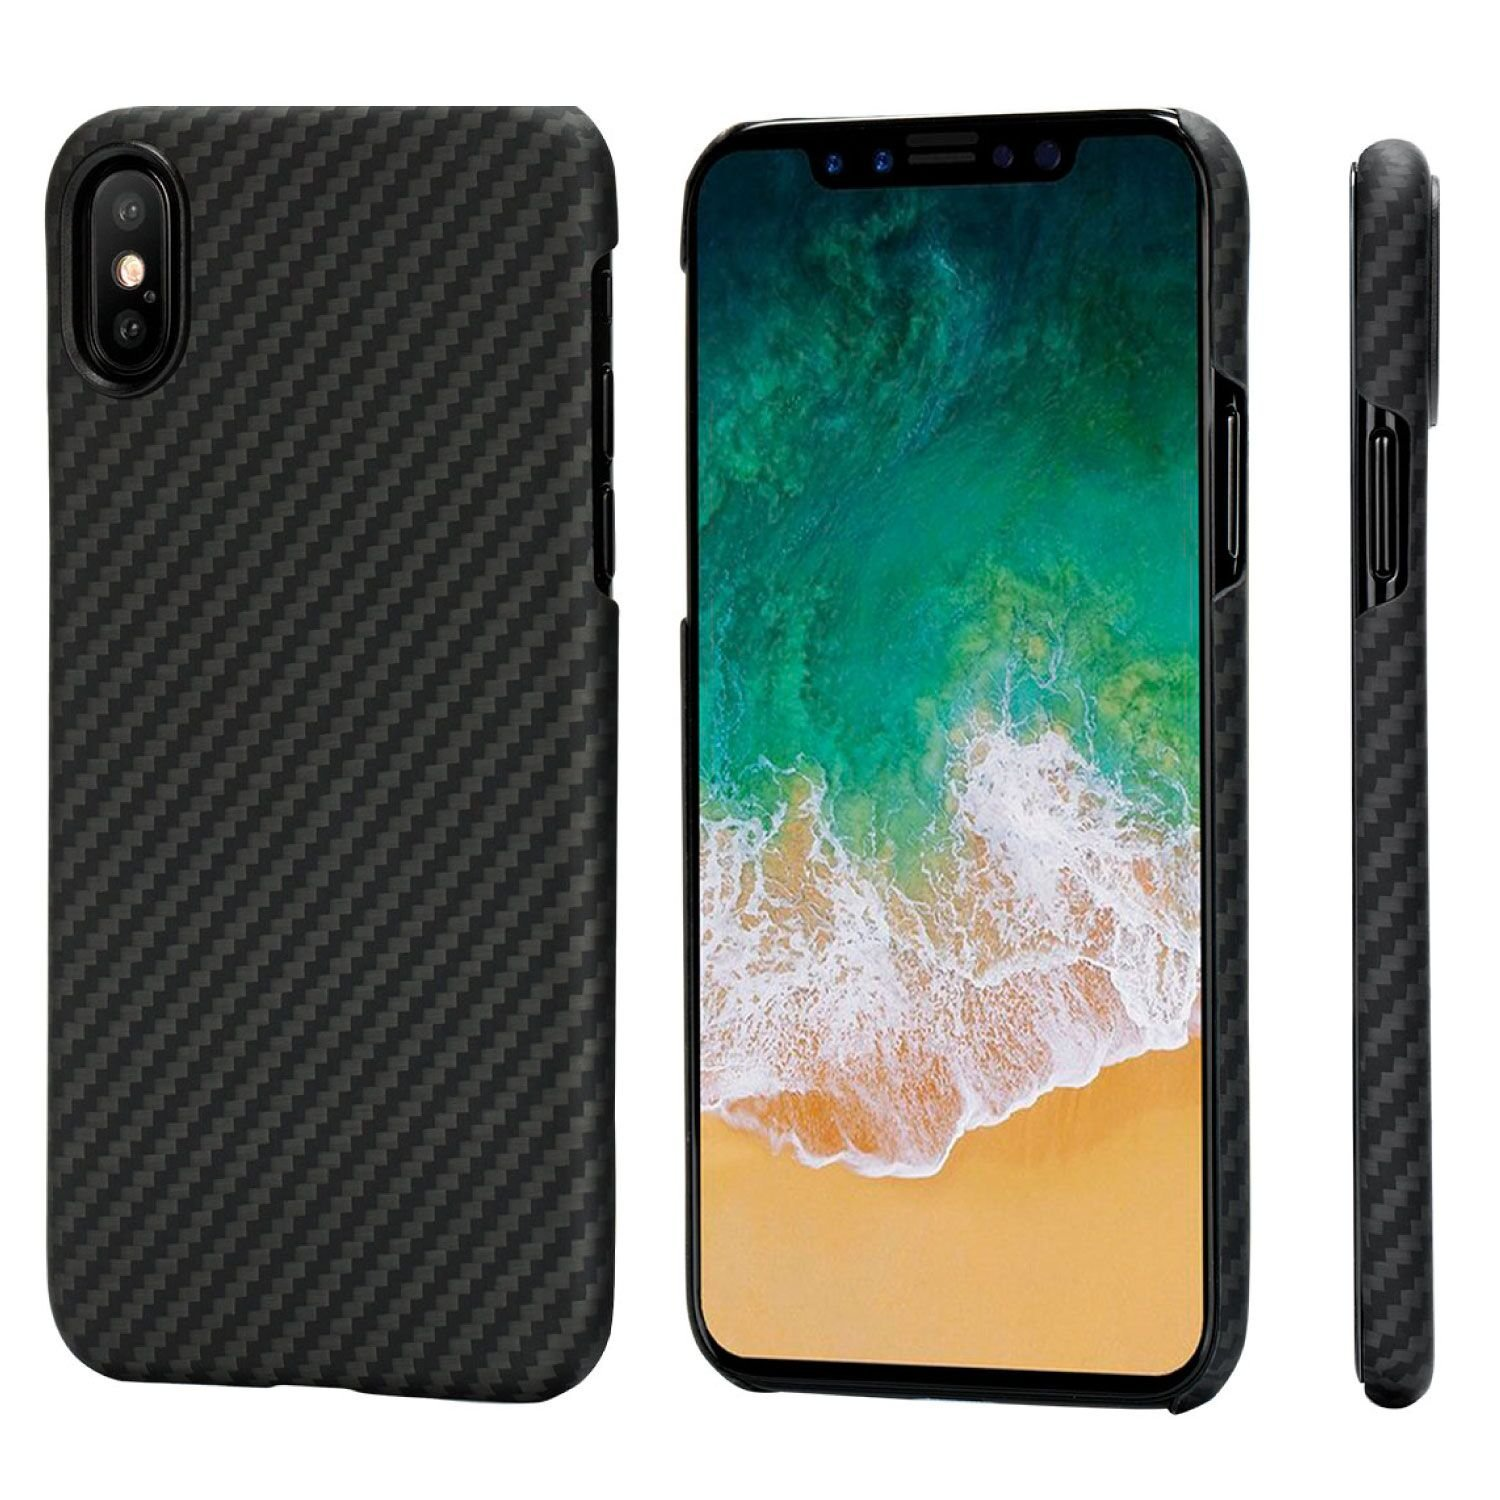 iPhone X Phone case amazon